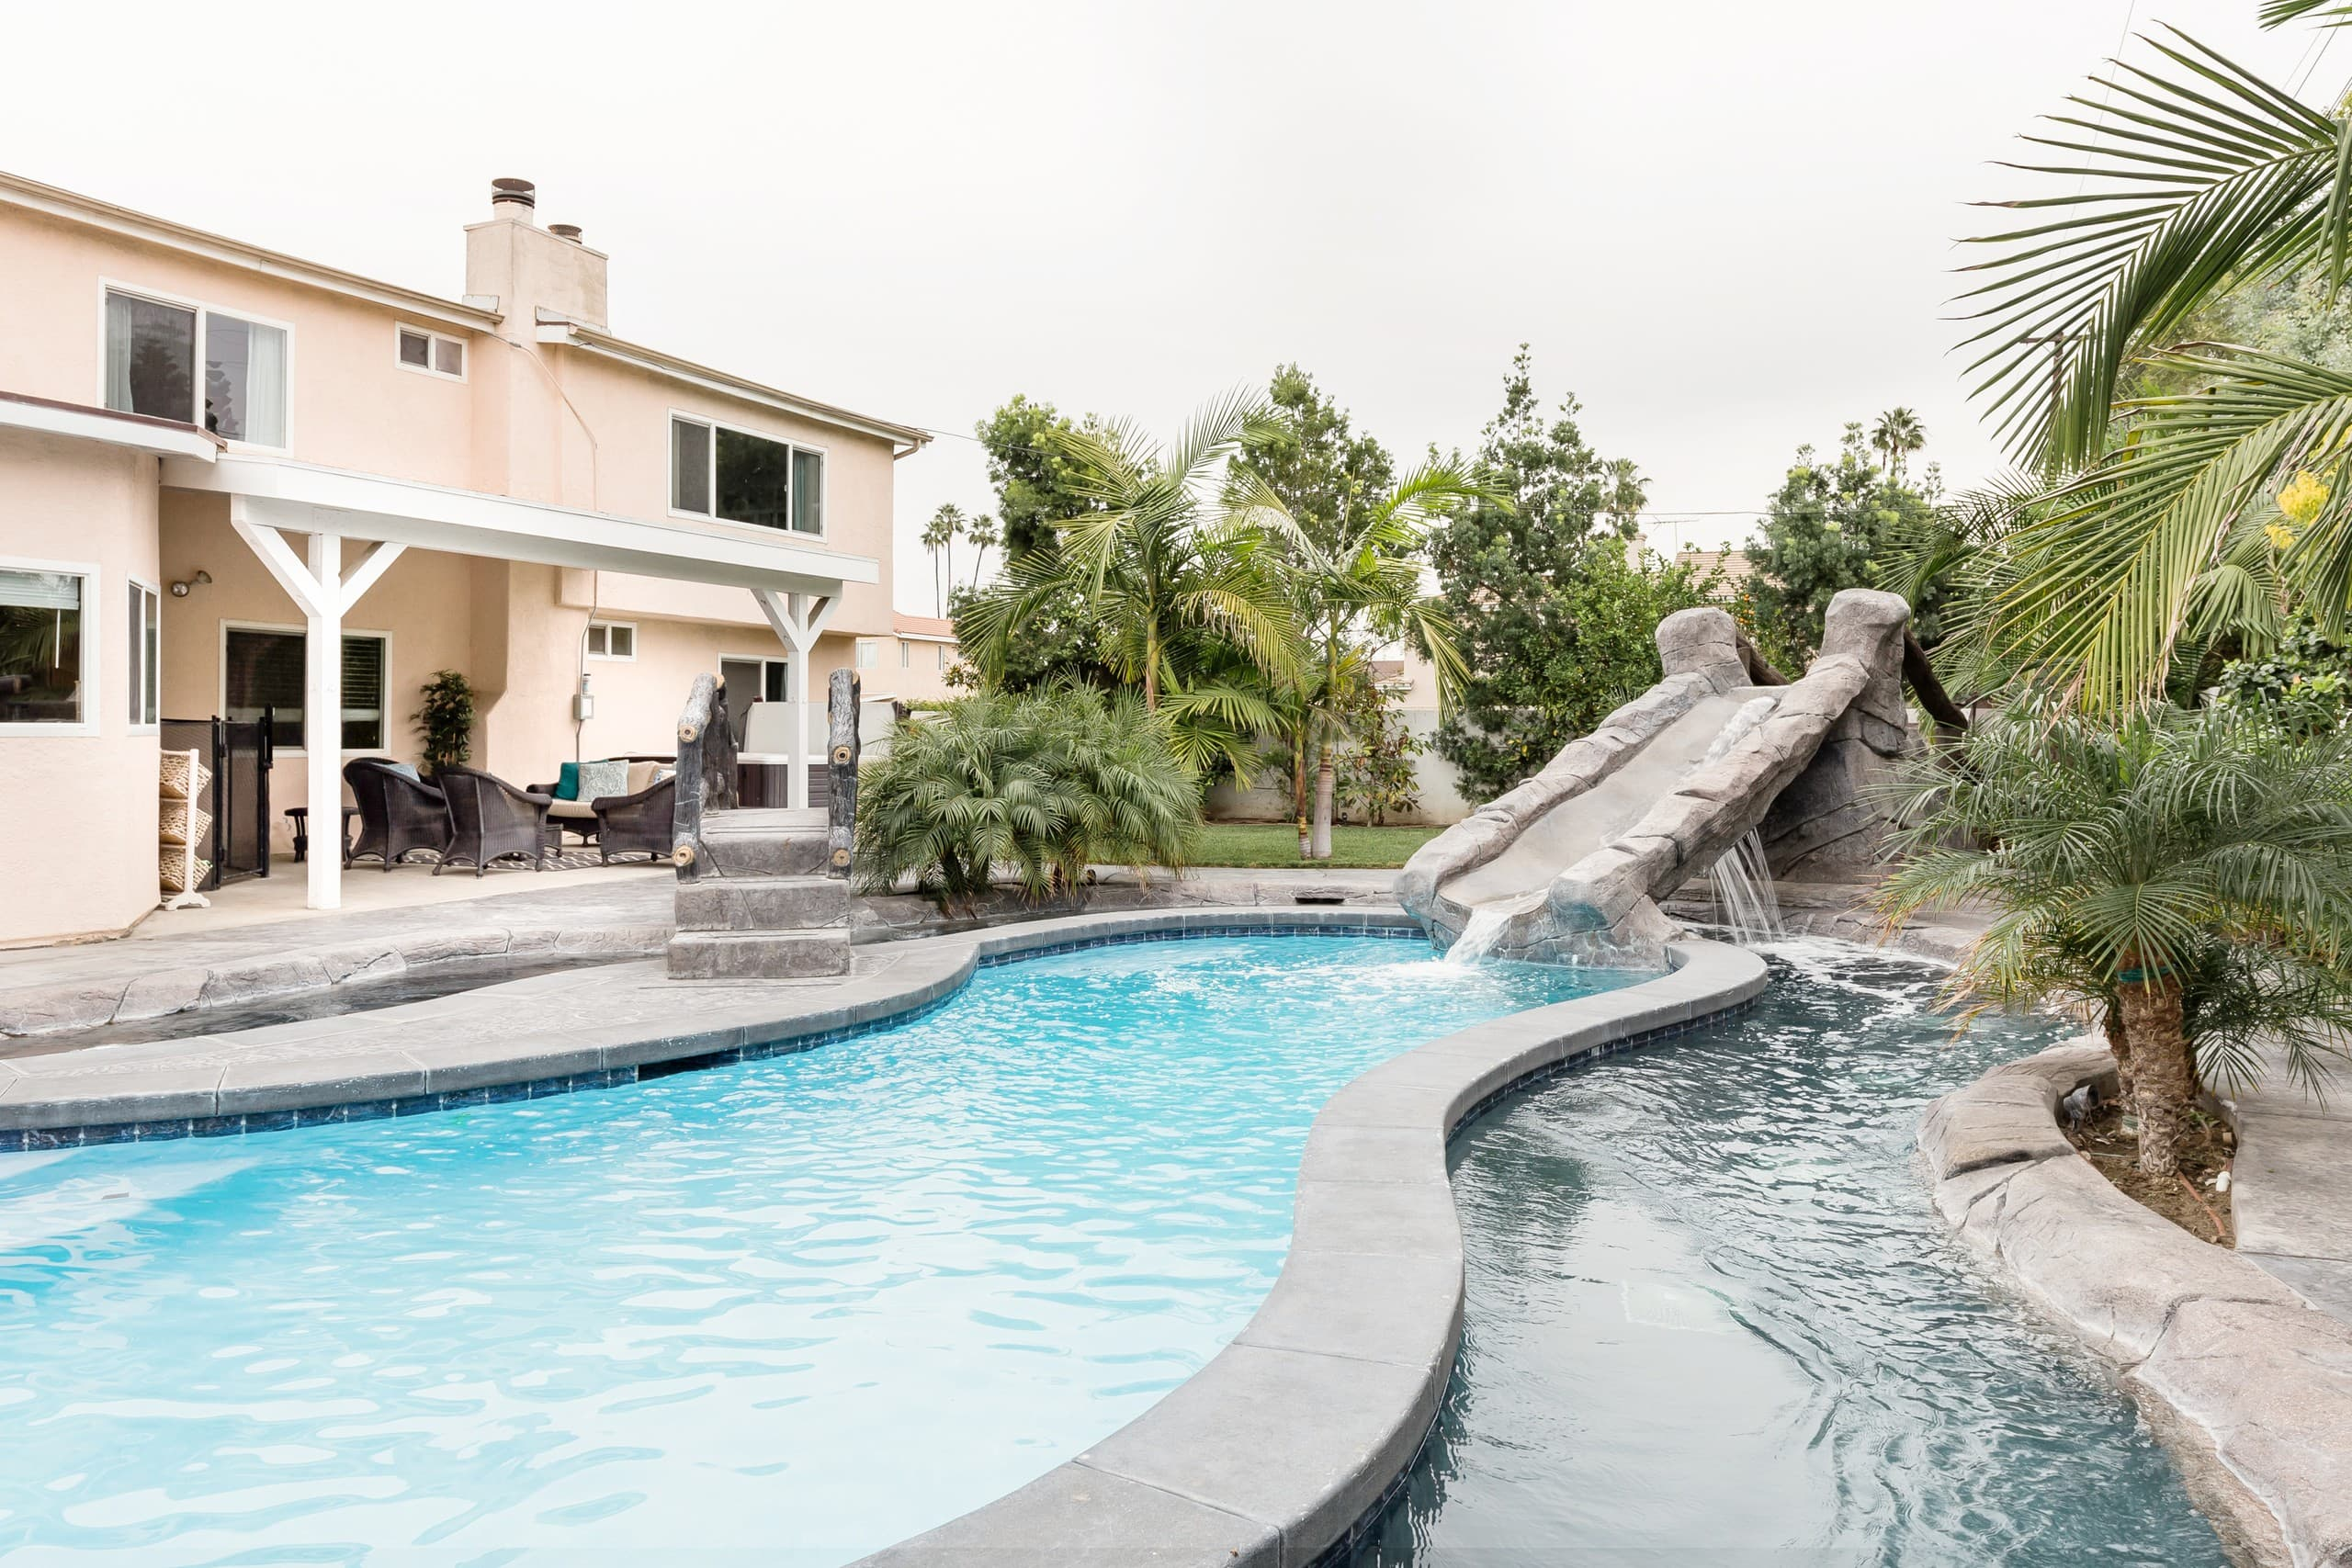 Wonderful Family Friendly Home With A Lazy River Style Pool Villas For Rent In Anaheim California United States